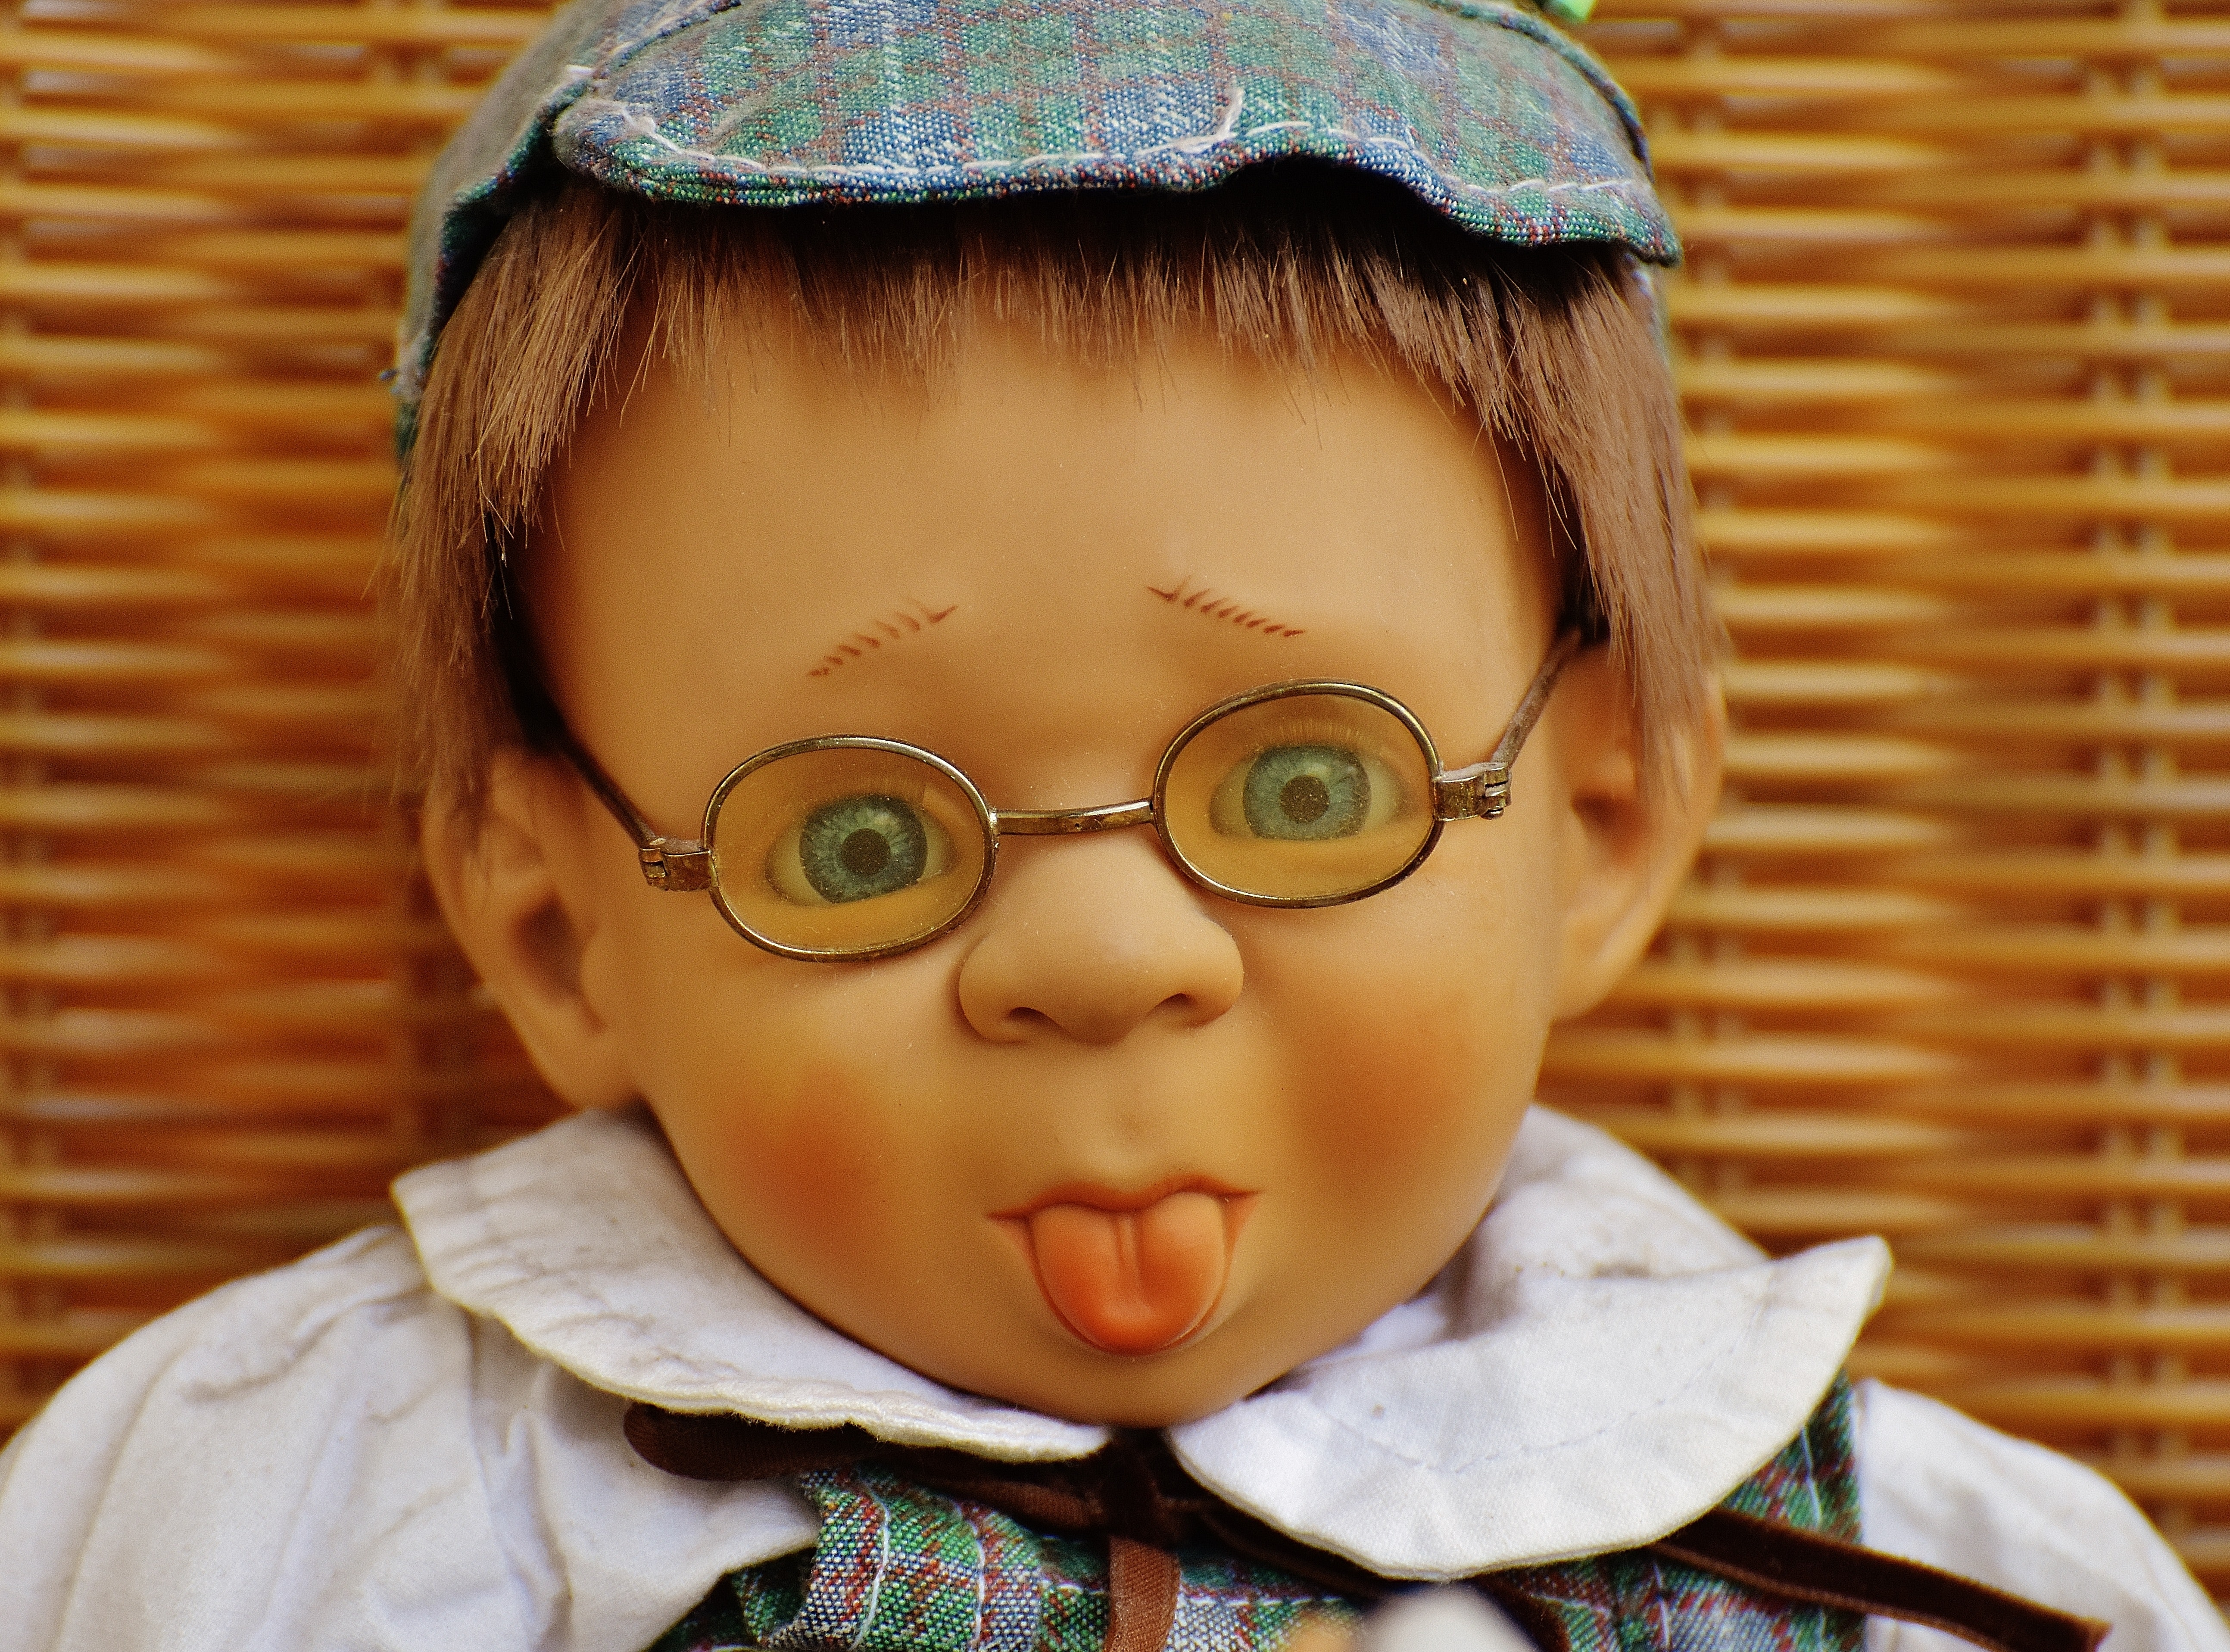 Doll Wearing Eyeglasses, Indoors, Young, Toys, Tongue, HQ Photo